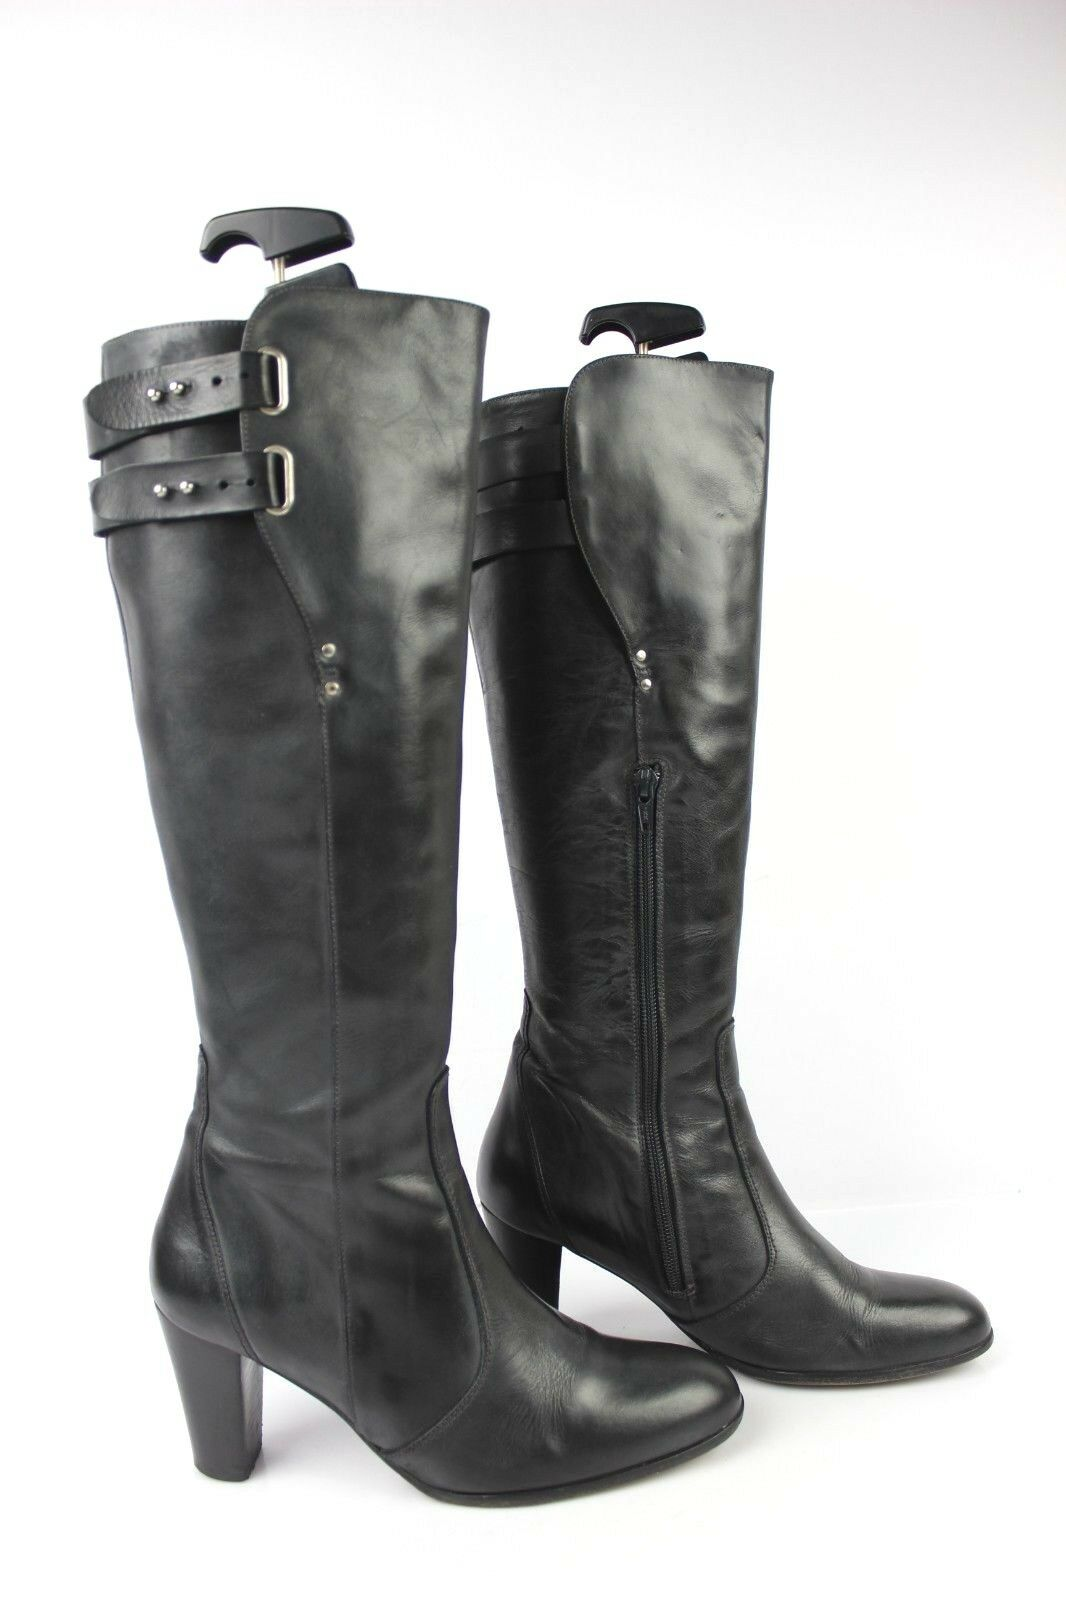 ANN TUIL Boots All Leather Black T 37 Good Condition